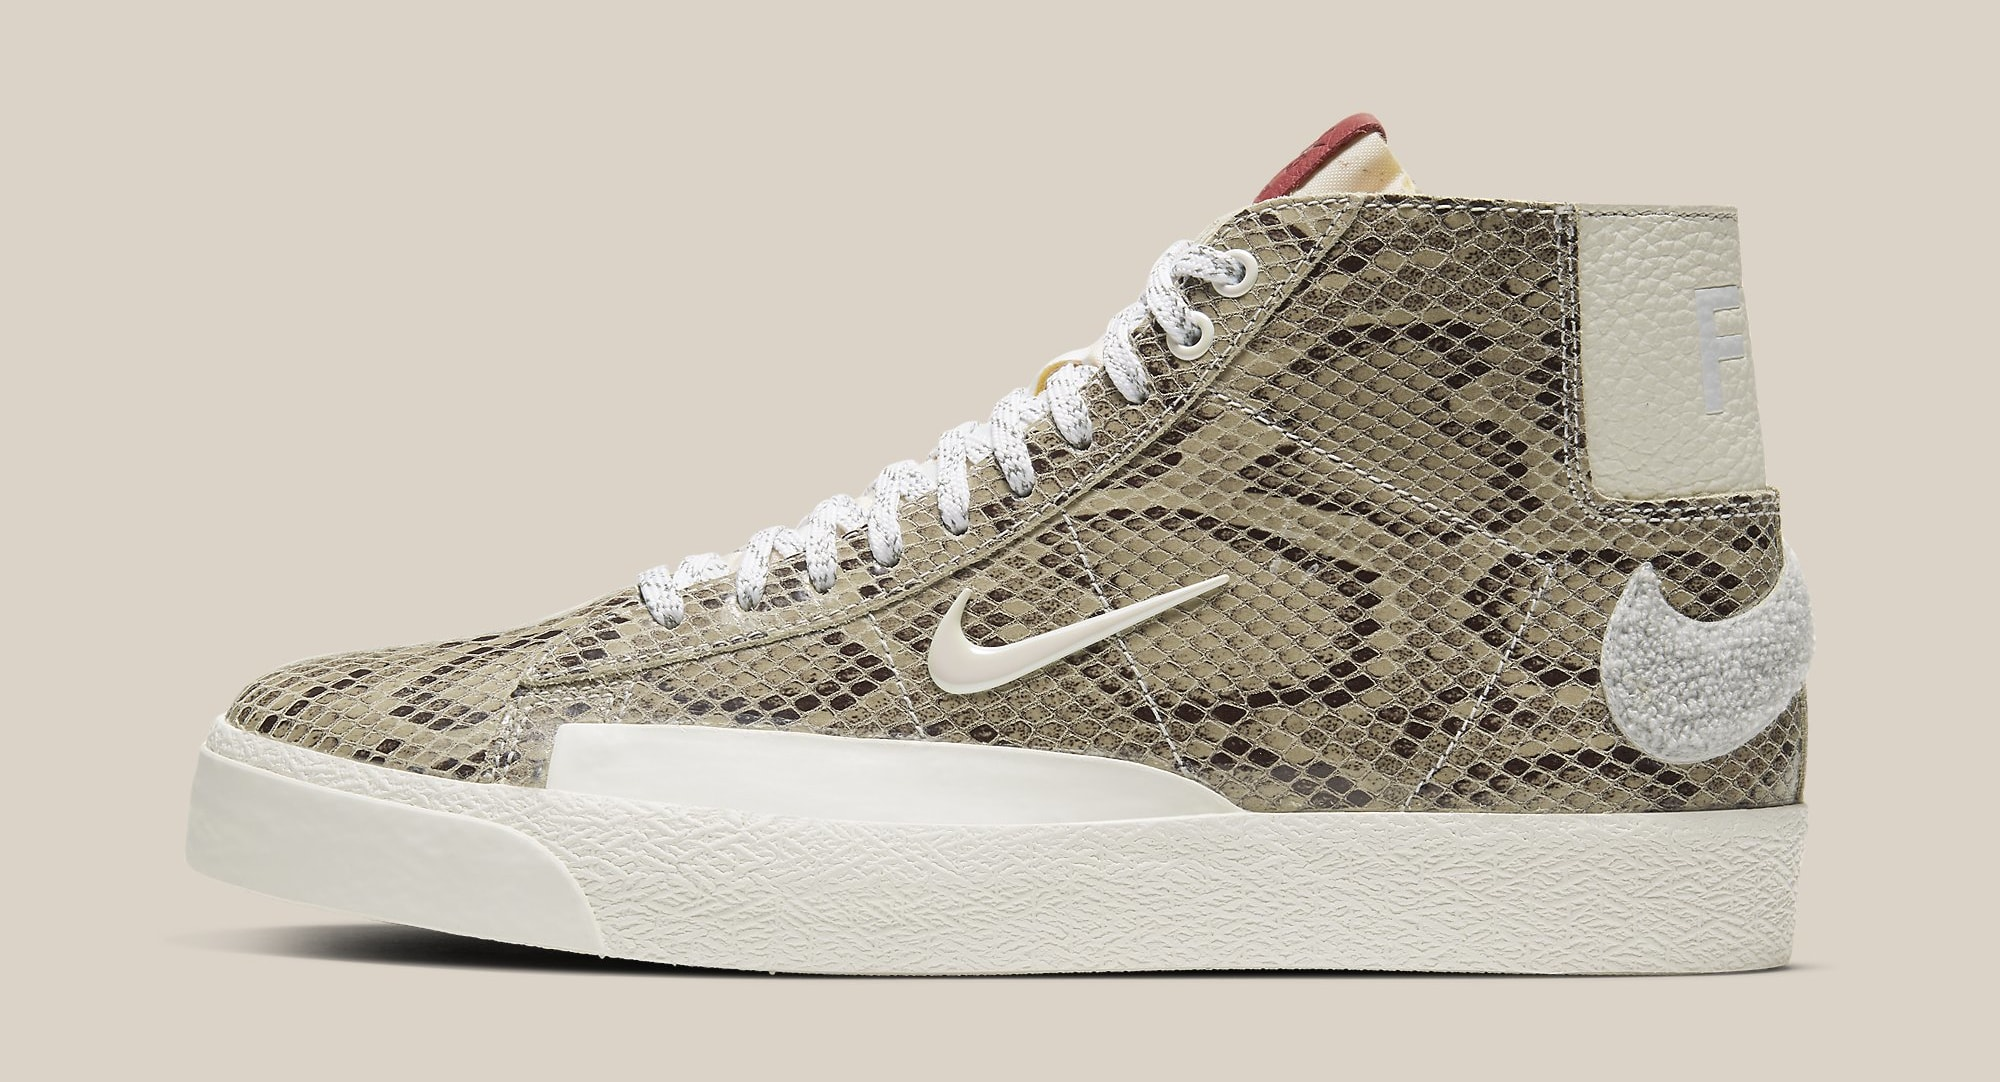 soulland-nike-blazer-mid-fri-day-cn4540-001-lateral